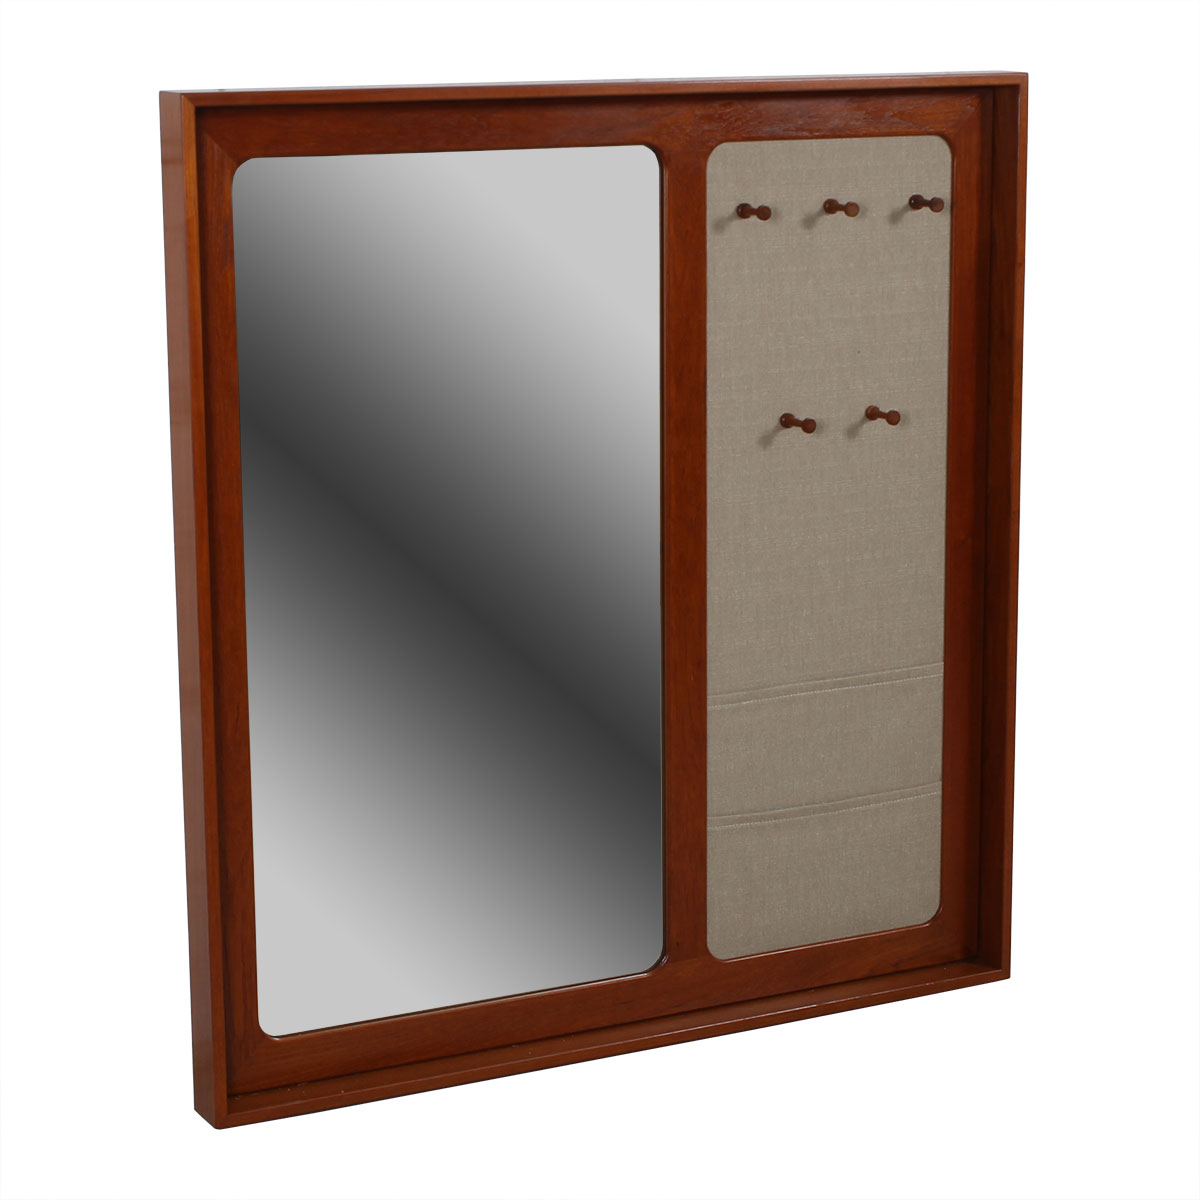 Huge Danish Modern Multi-Function Mirror – Aksel Kjersgaard